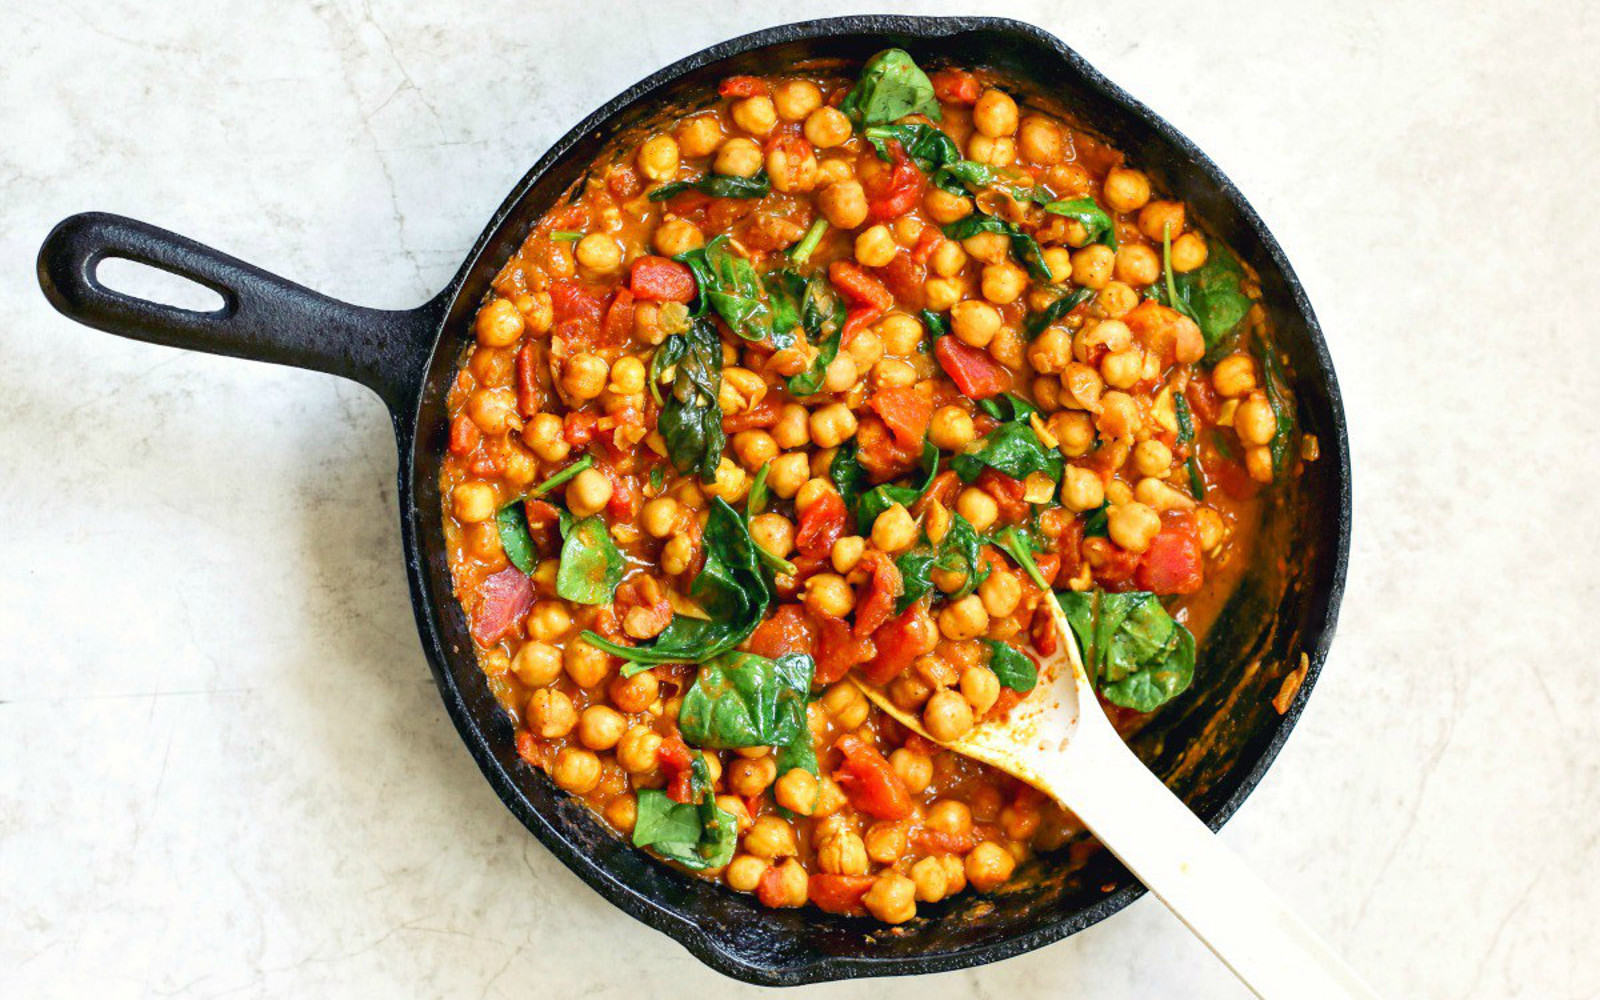 20-Minute Spinach and Chickpea Curry